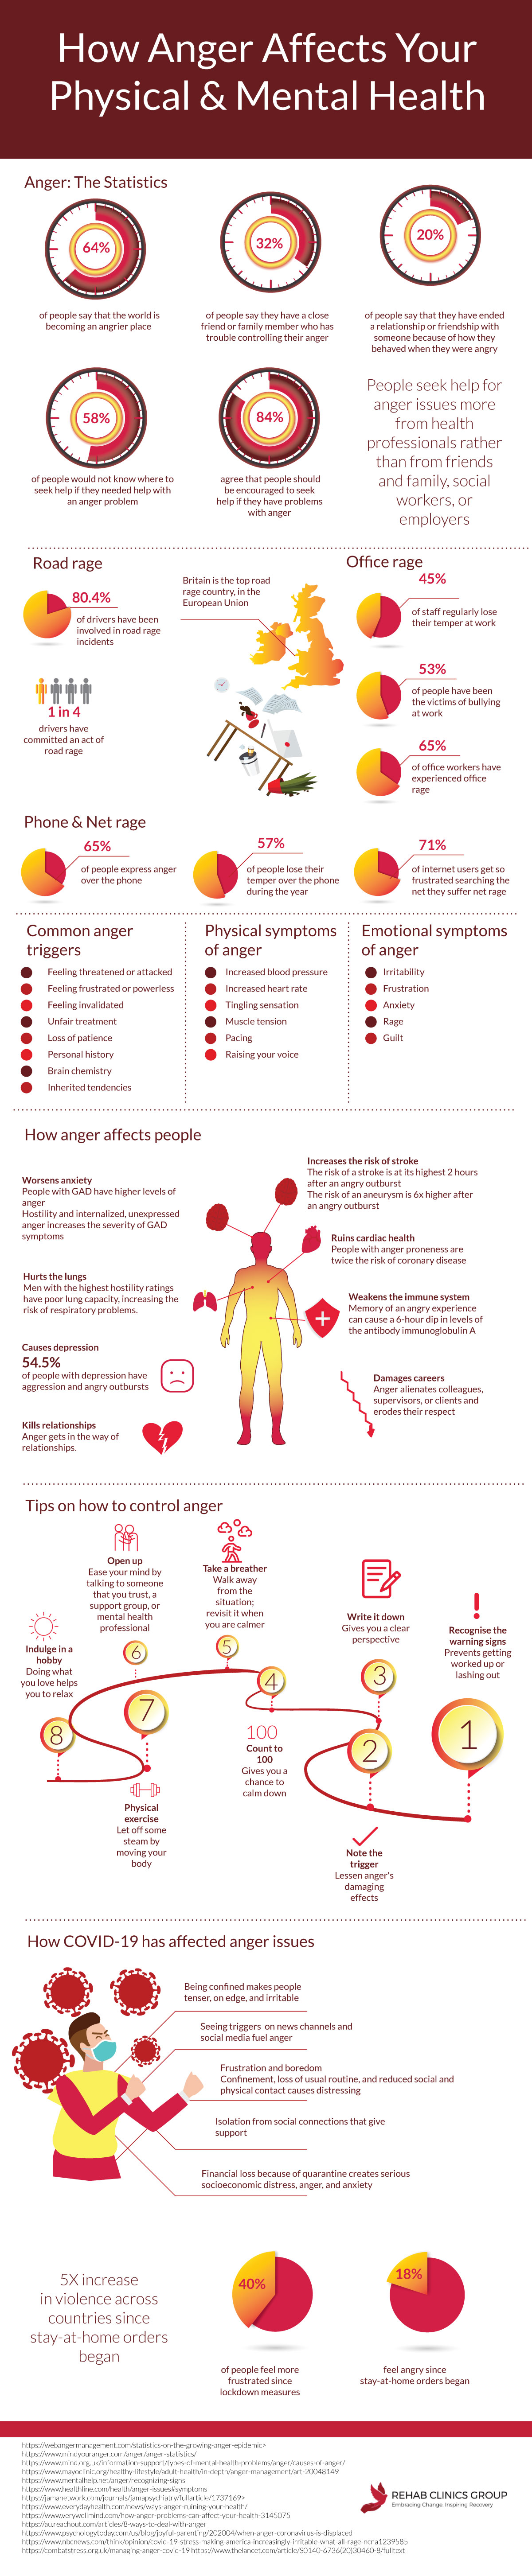 How Anger Affects Your Physical & Mental Health